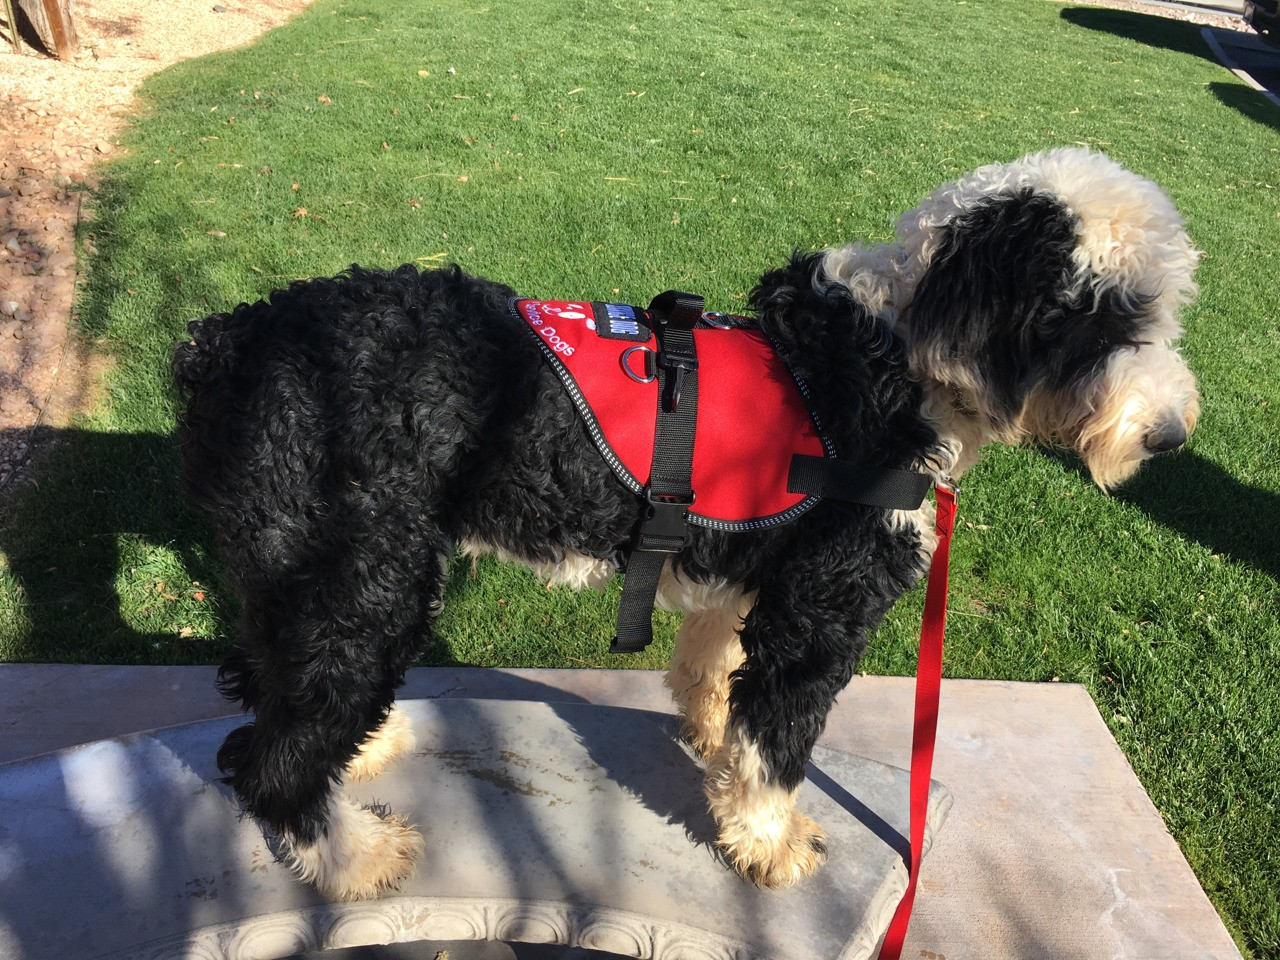 More pictures of Winston the sheepadoodle